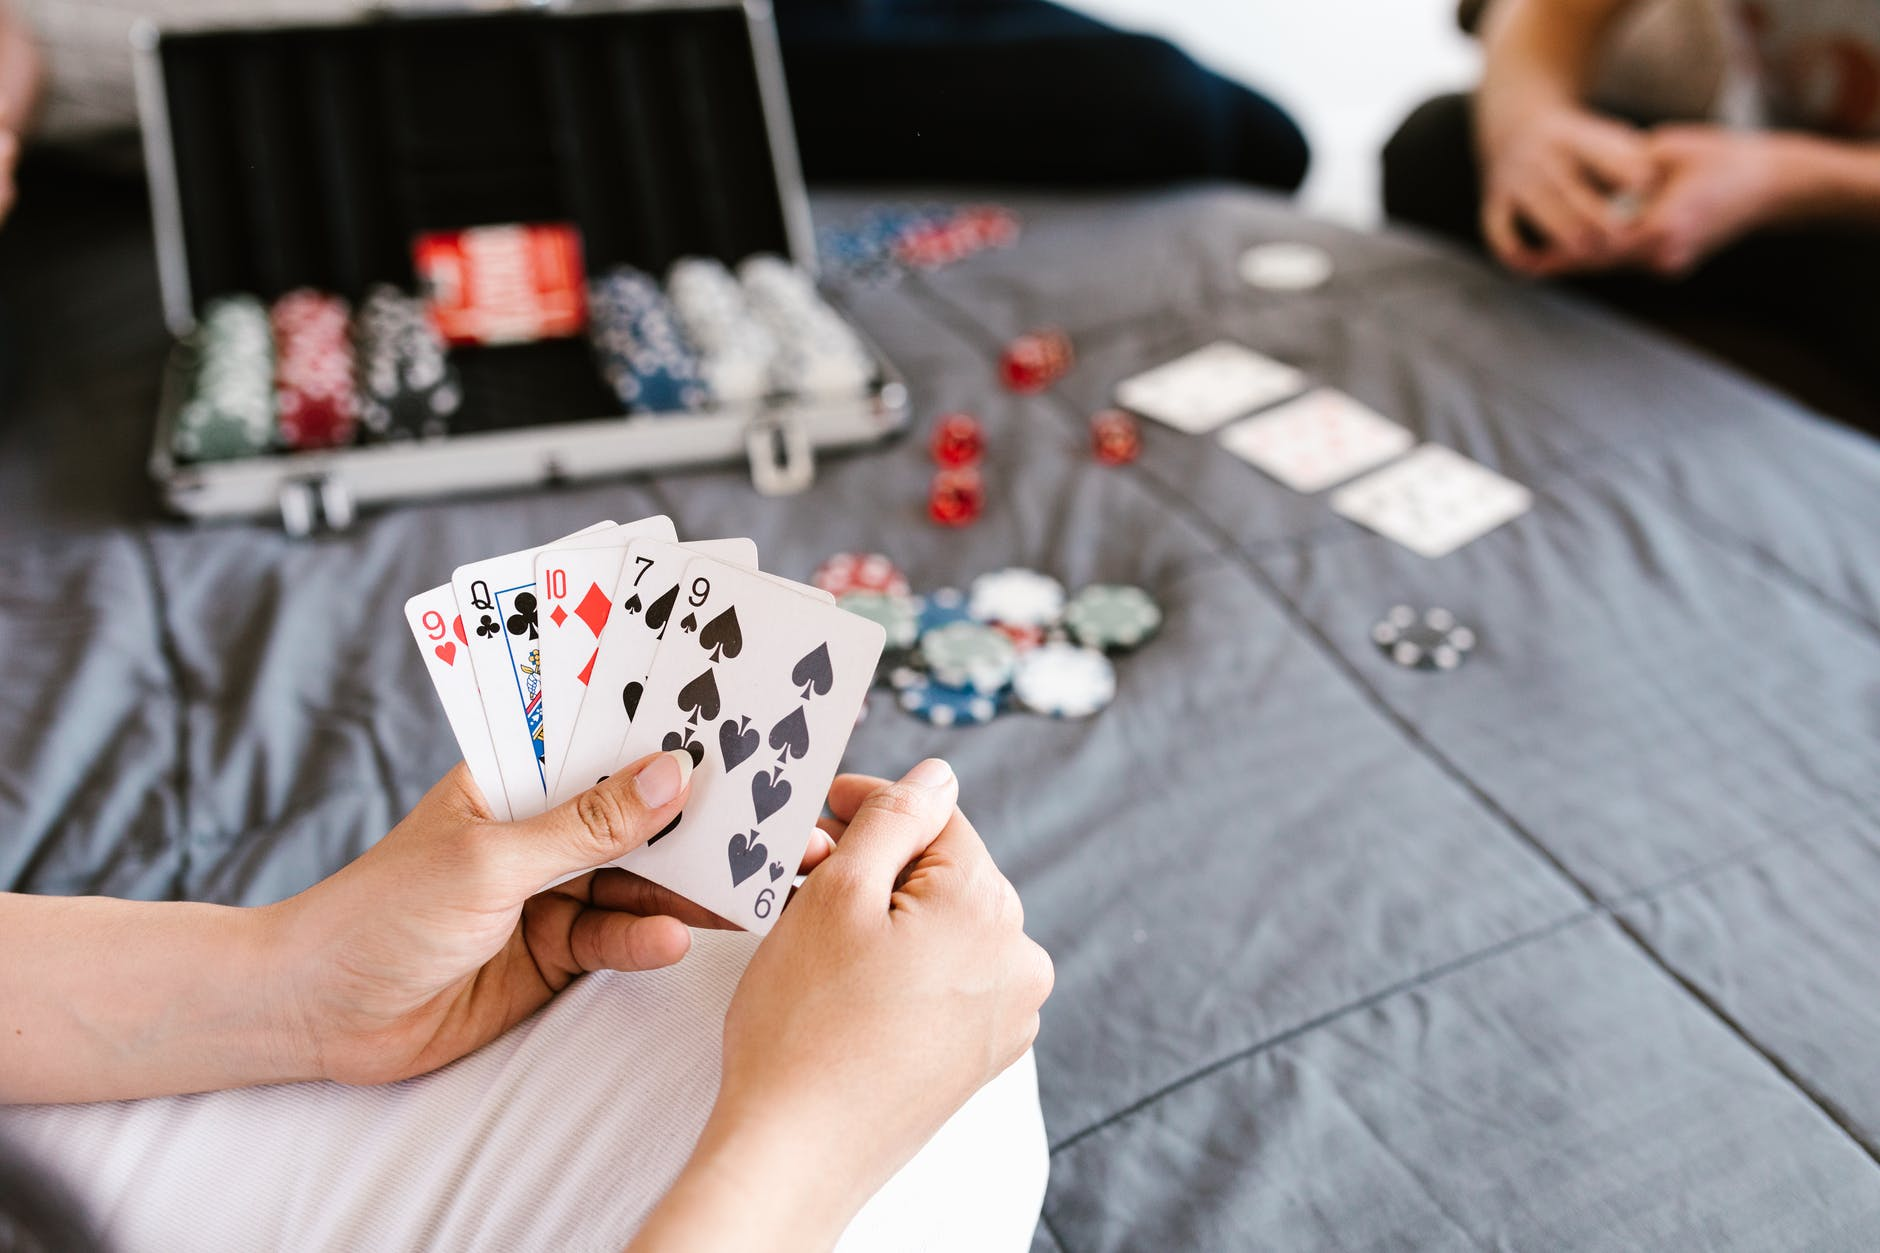 how card counting in blackjack works